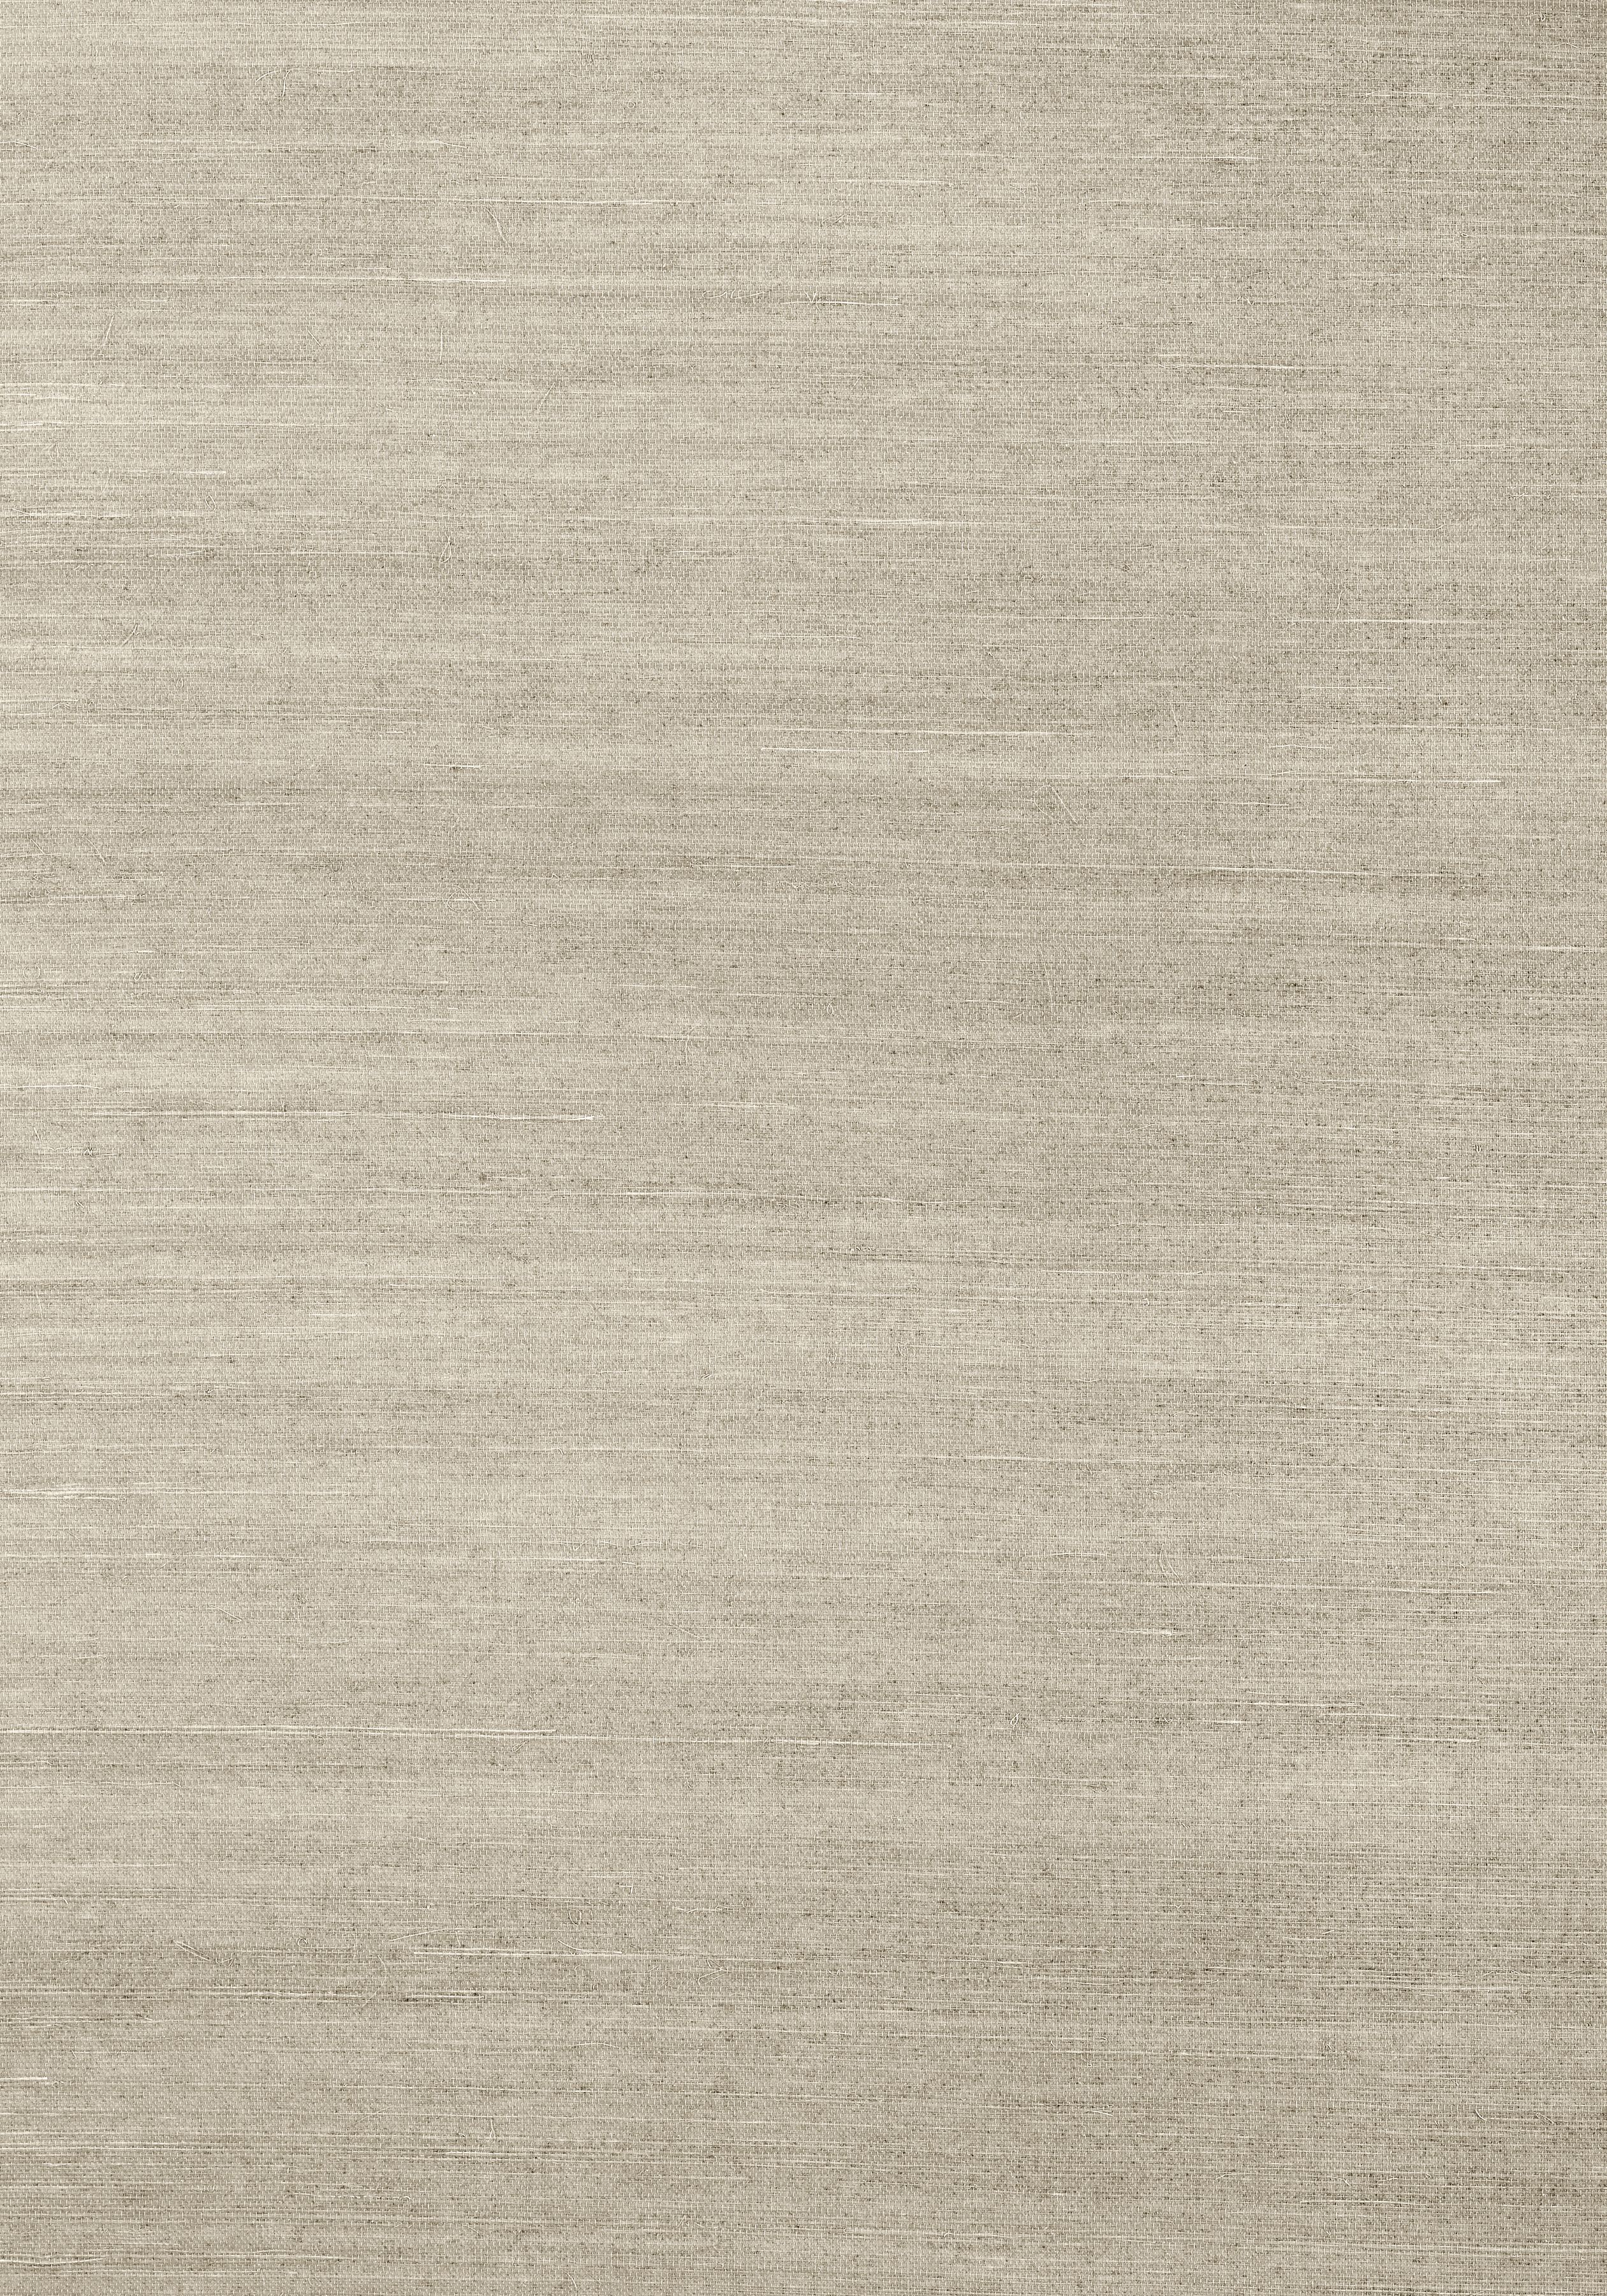 Shang Extra Fine Sisal Smoke T41175 Collection Grasscloth